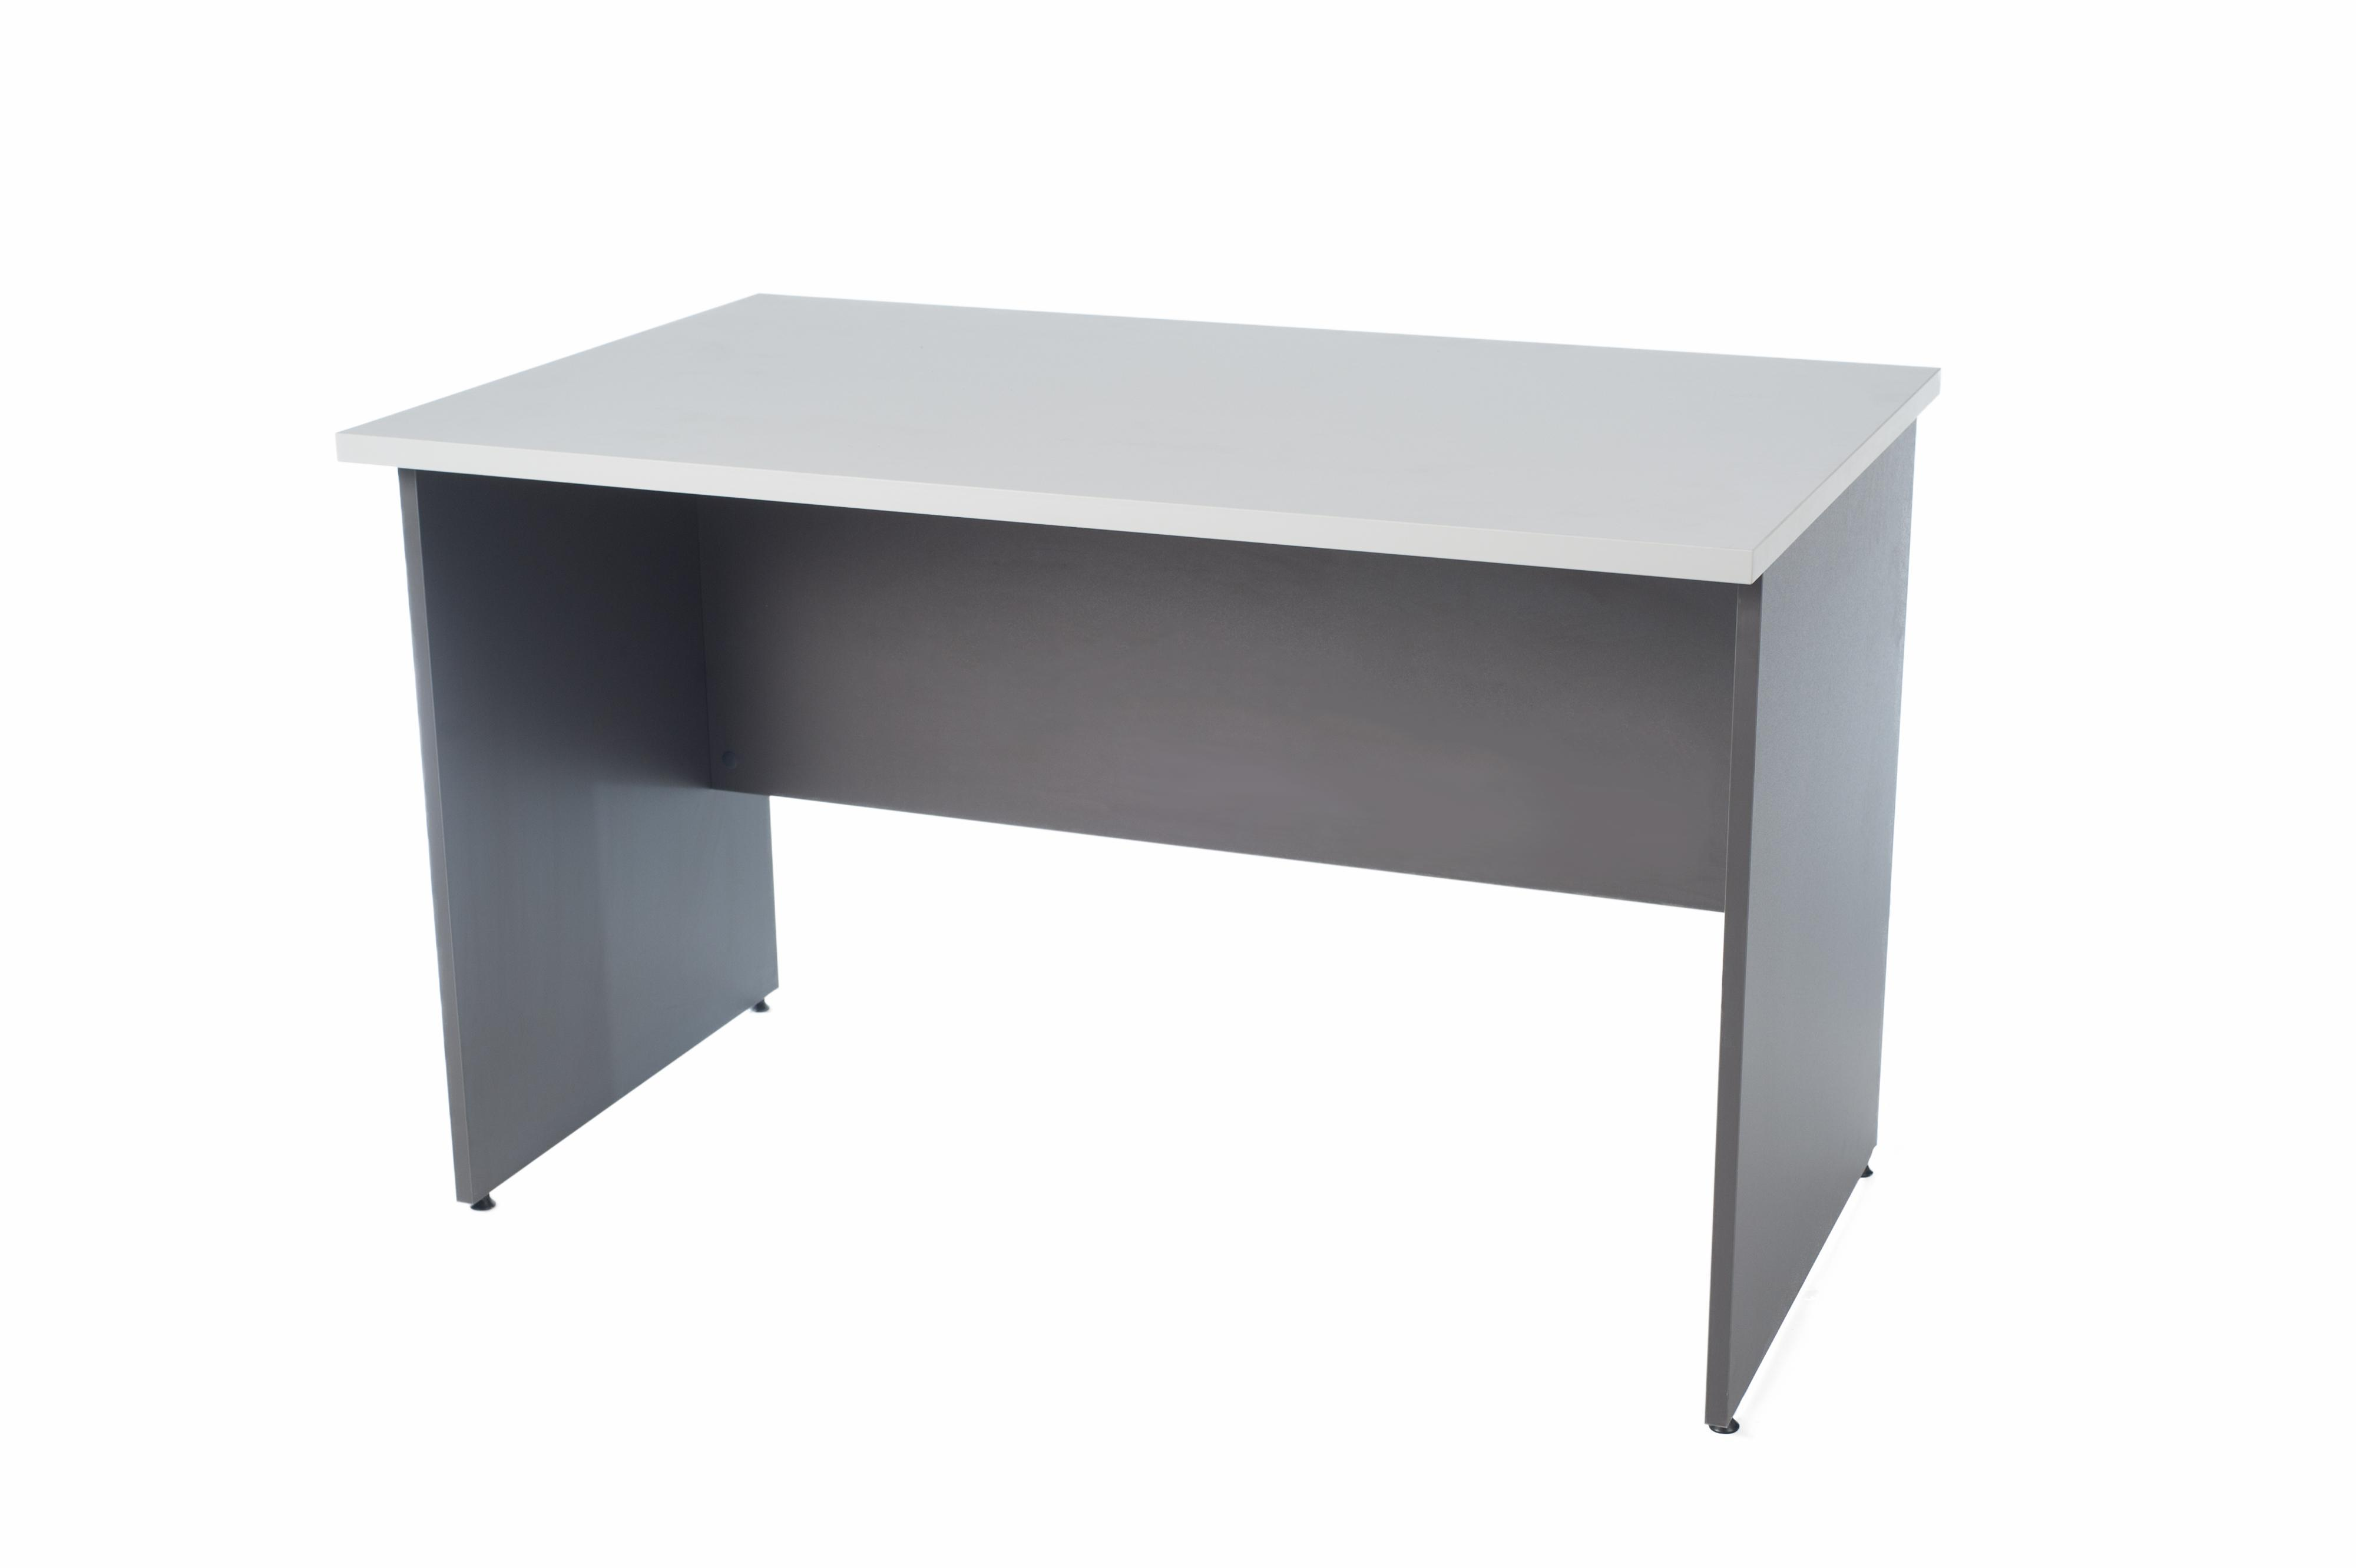 Writing Table / Study Table / Office Table (1.5 Meter)